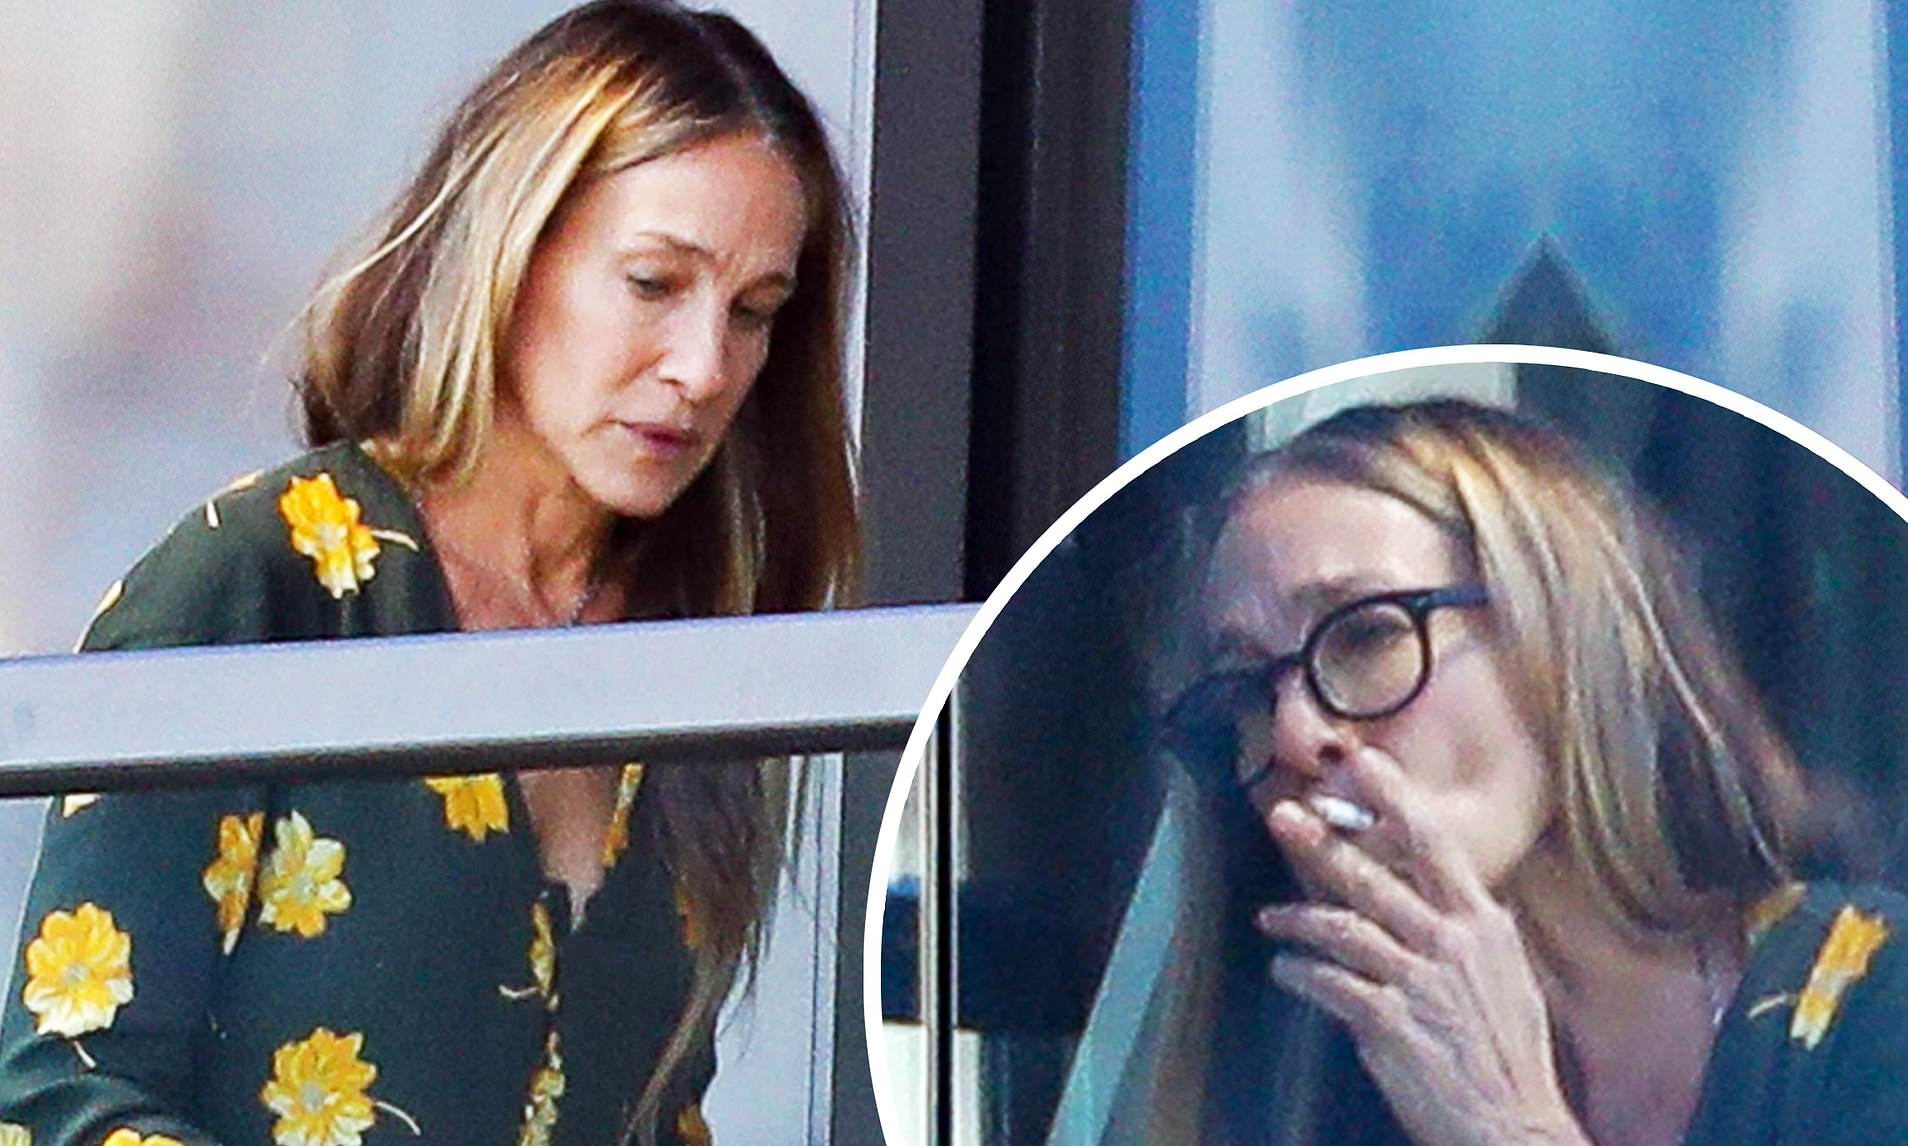 Sarah Jessica Parker and Matthew Broderick Marriage Trouble due to her Smoking